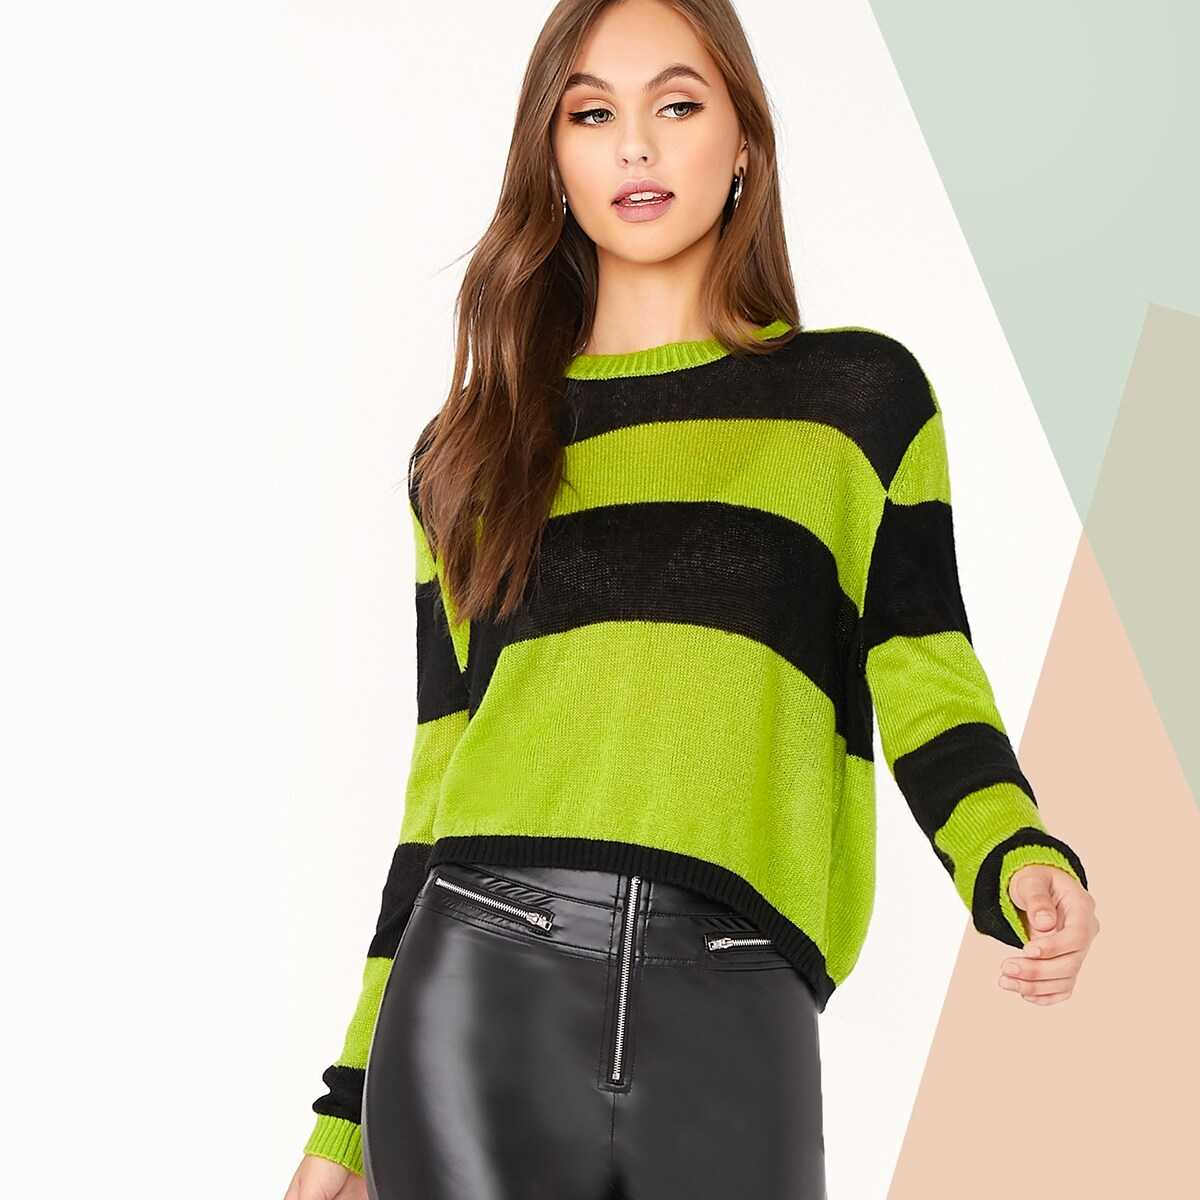 Mock Neck Striped Cut-and-sew Sweater in Multicolor by ROMWE on GOOFASH